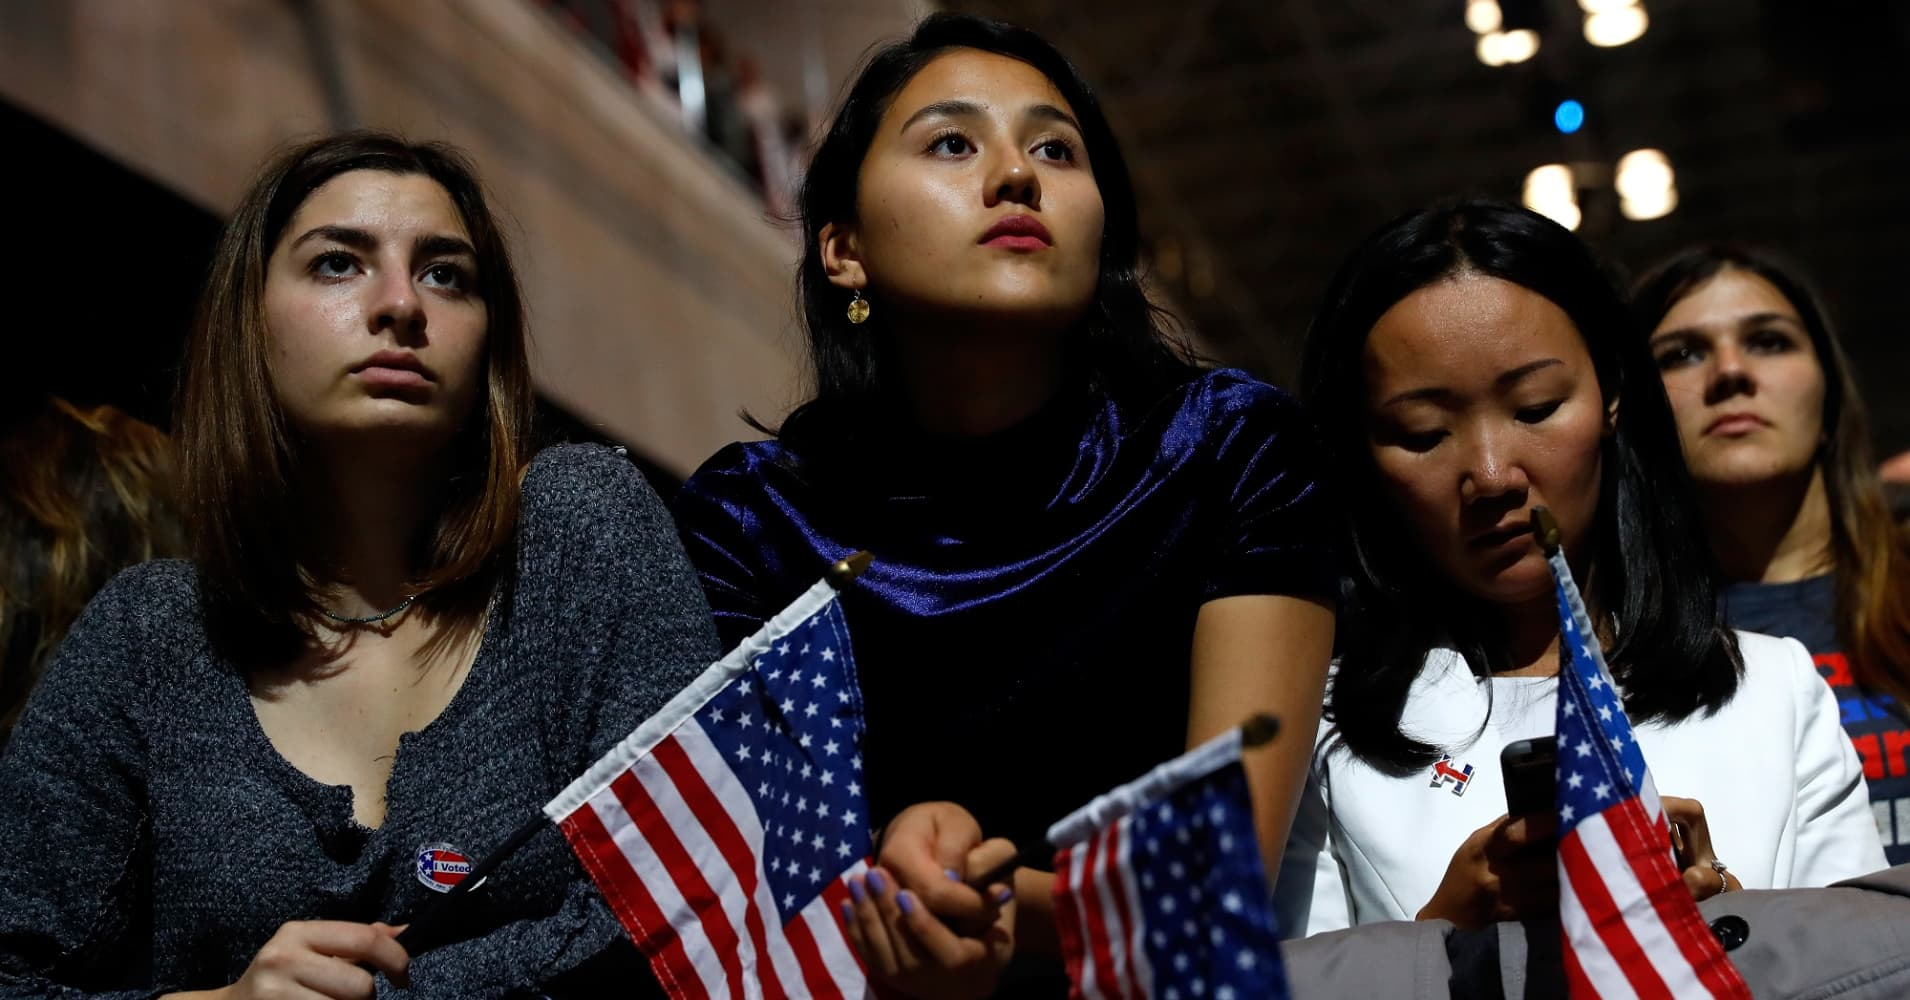 People hold American flags as they watch voting results at the Jacob K. Javits Convention Center on November 8, 2016.